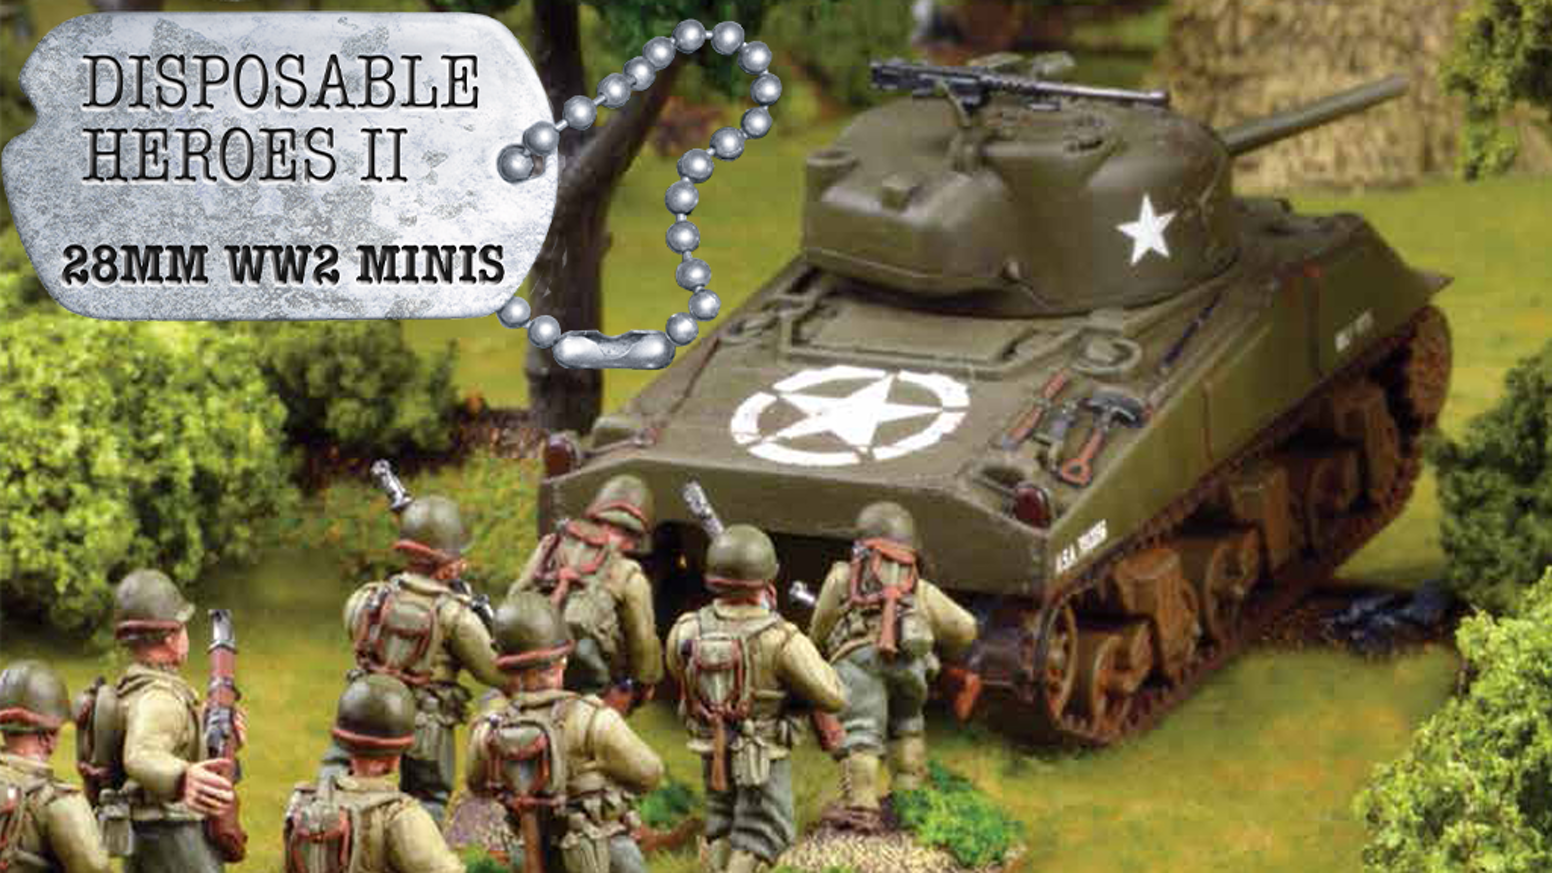 28mm World War 2 Wargaming Miniatures - Disposable Heroes by